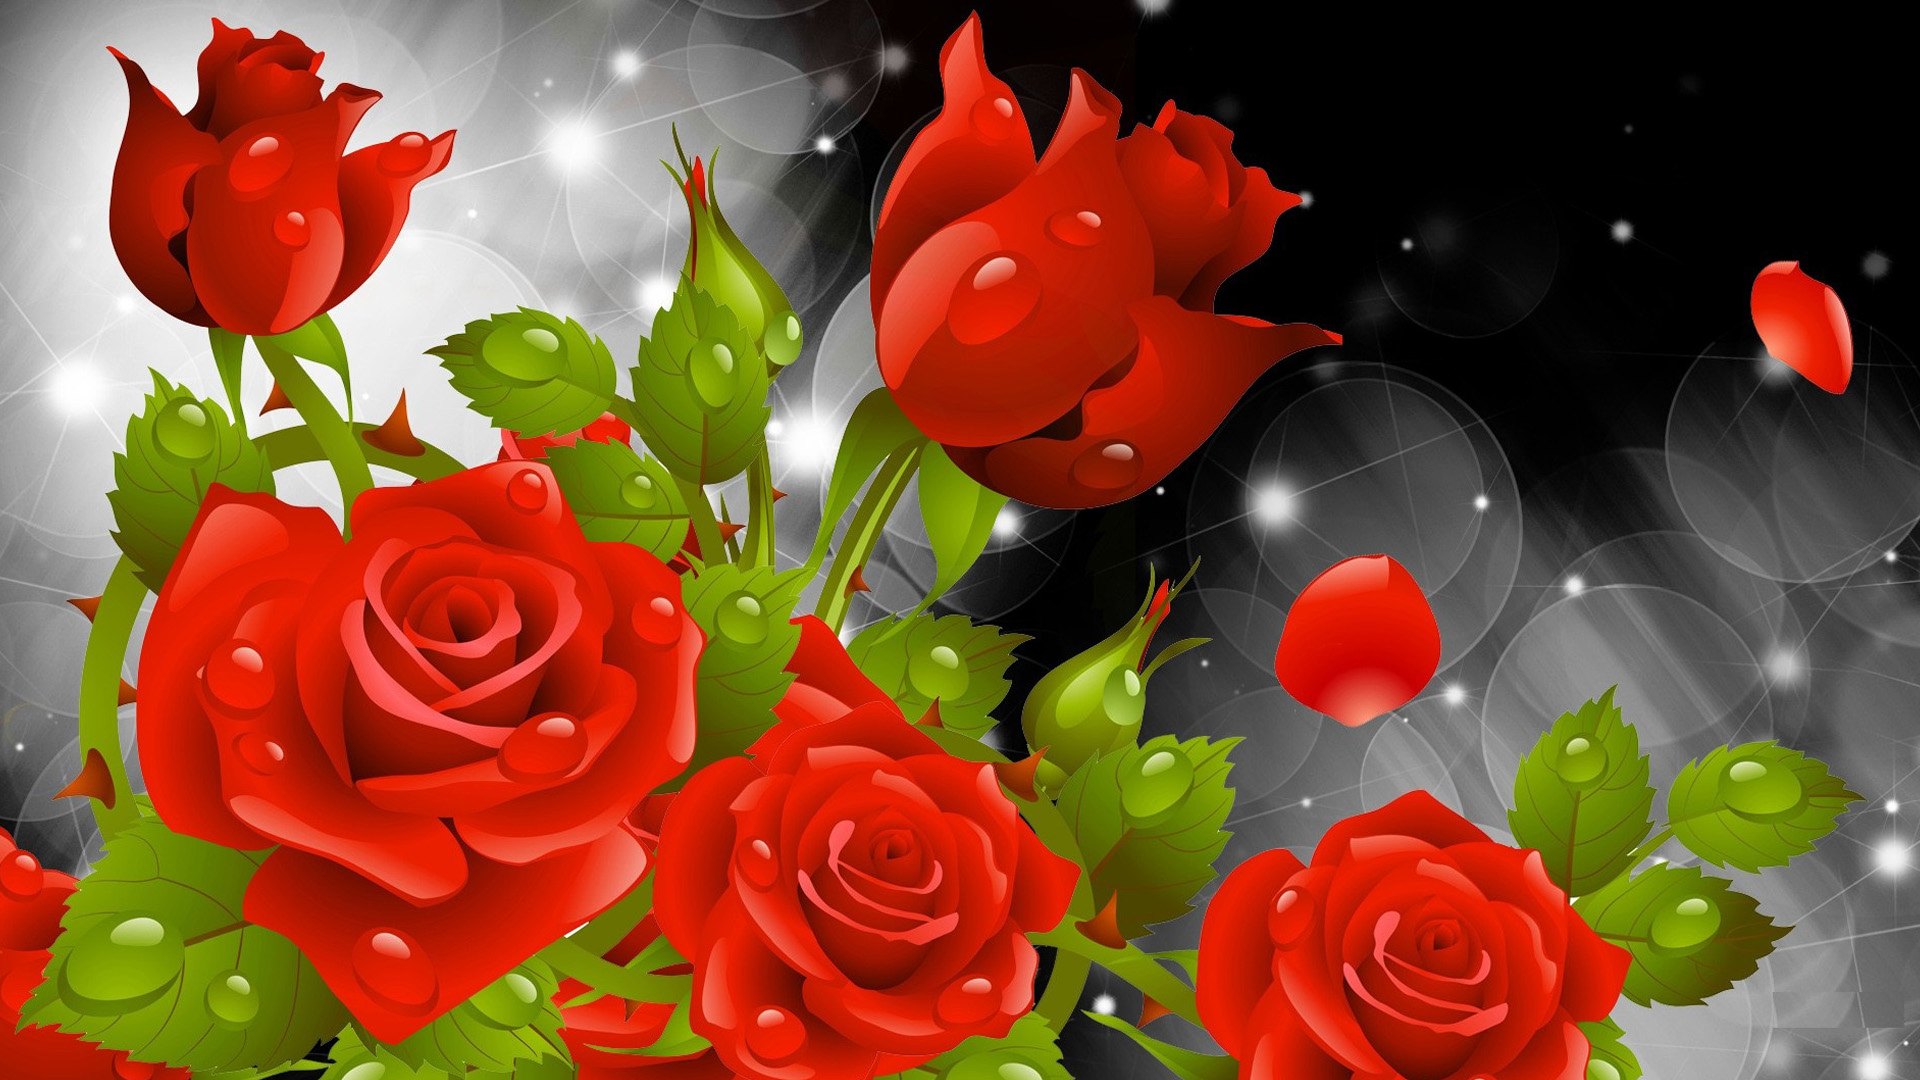 Beautiful Roses Wallpapers Funmag Beautiful Roses Wallpapers Funmag